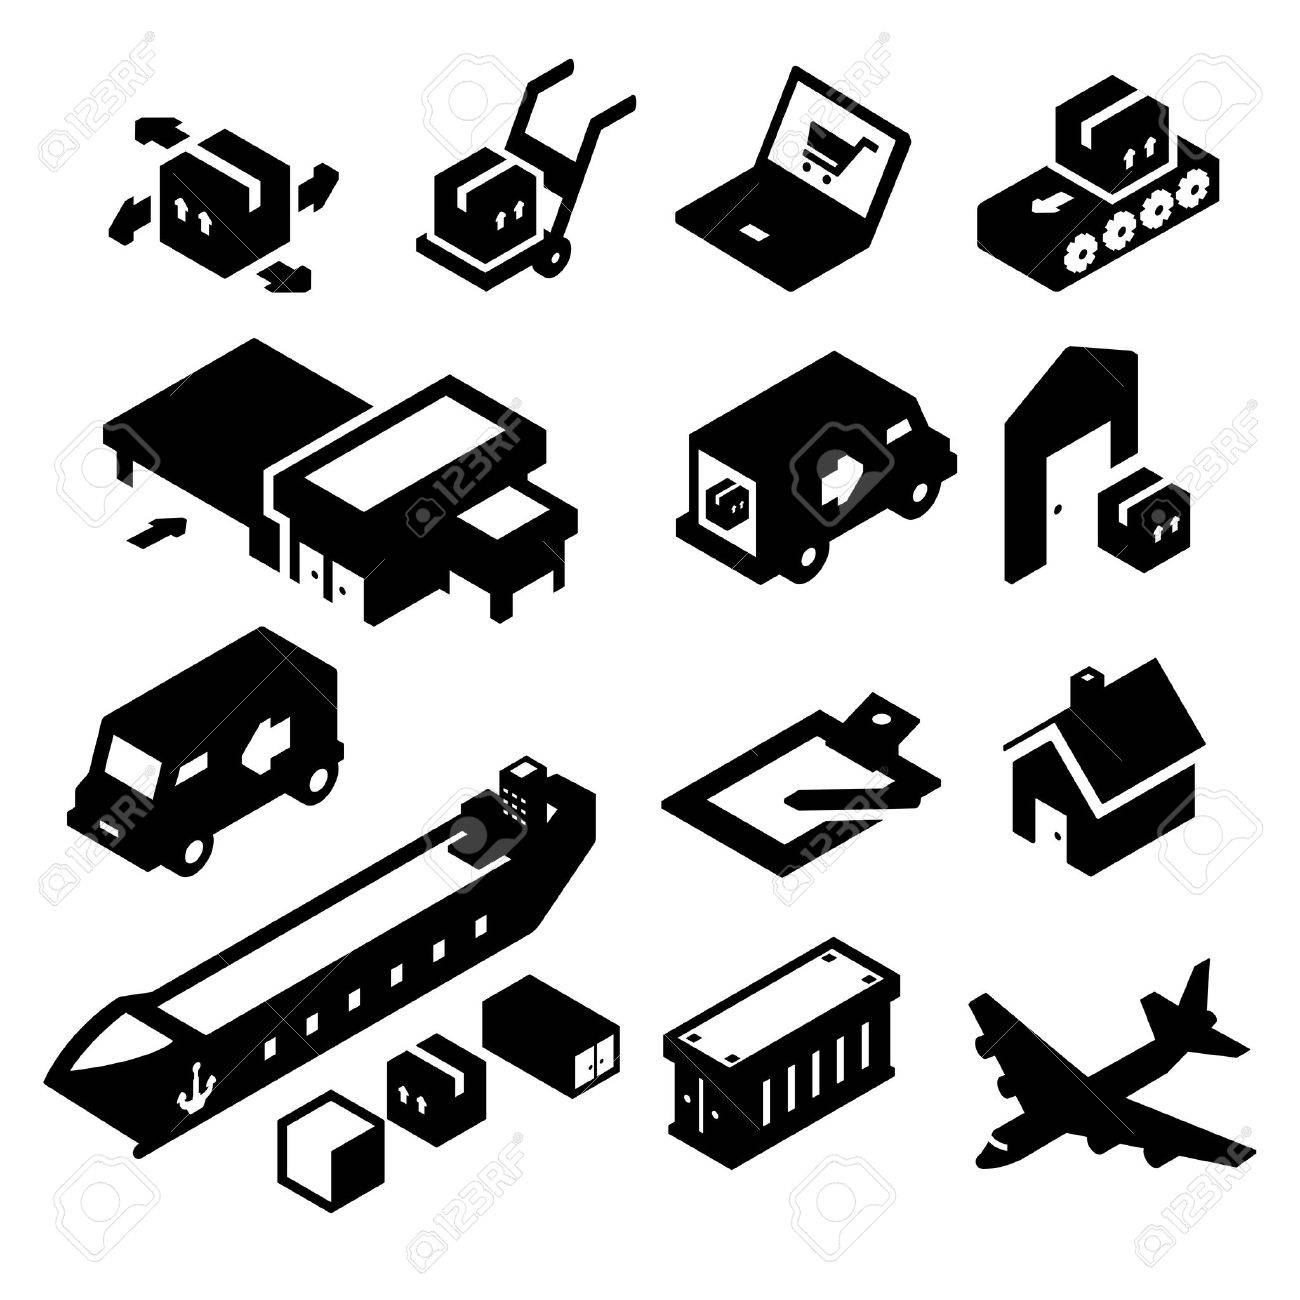 Shipping Icons two - 23103921